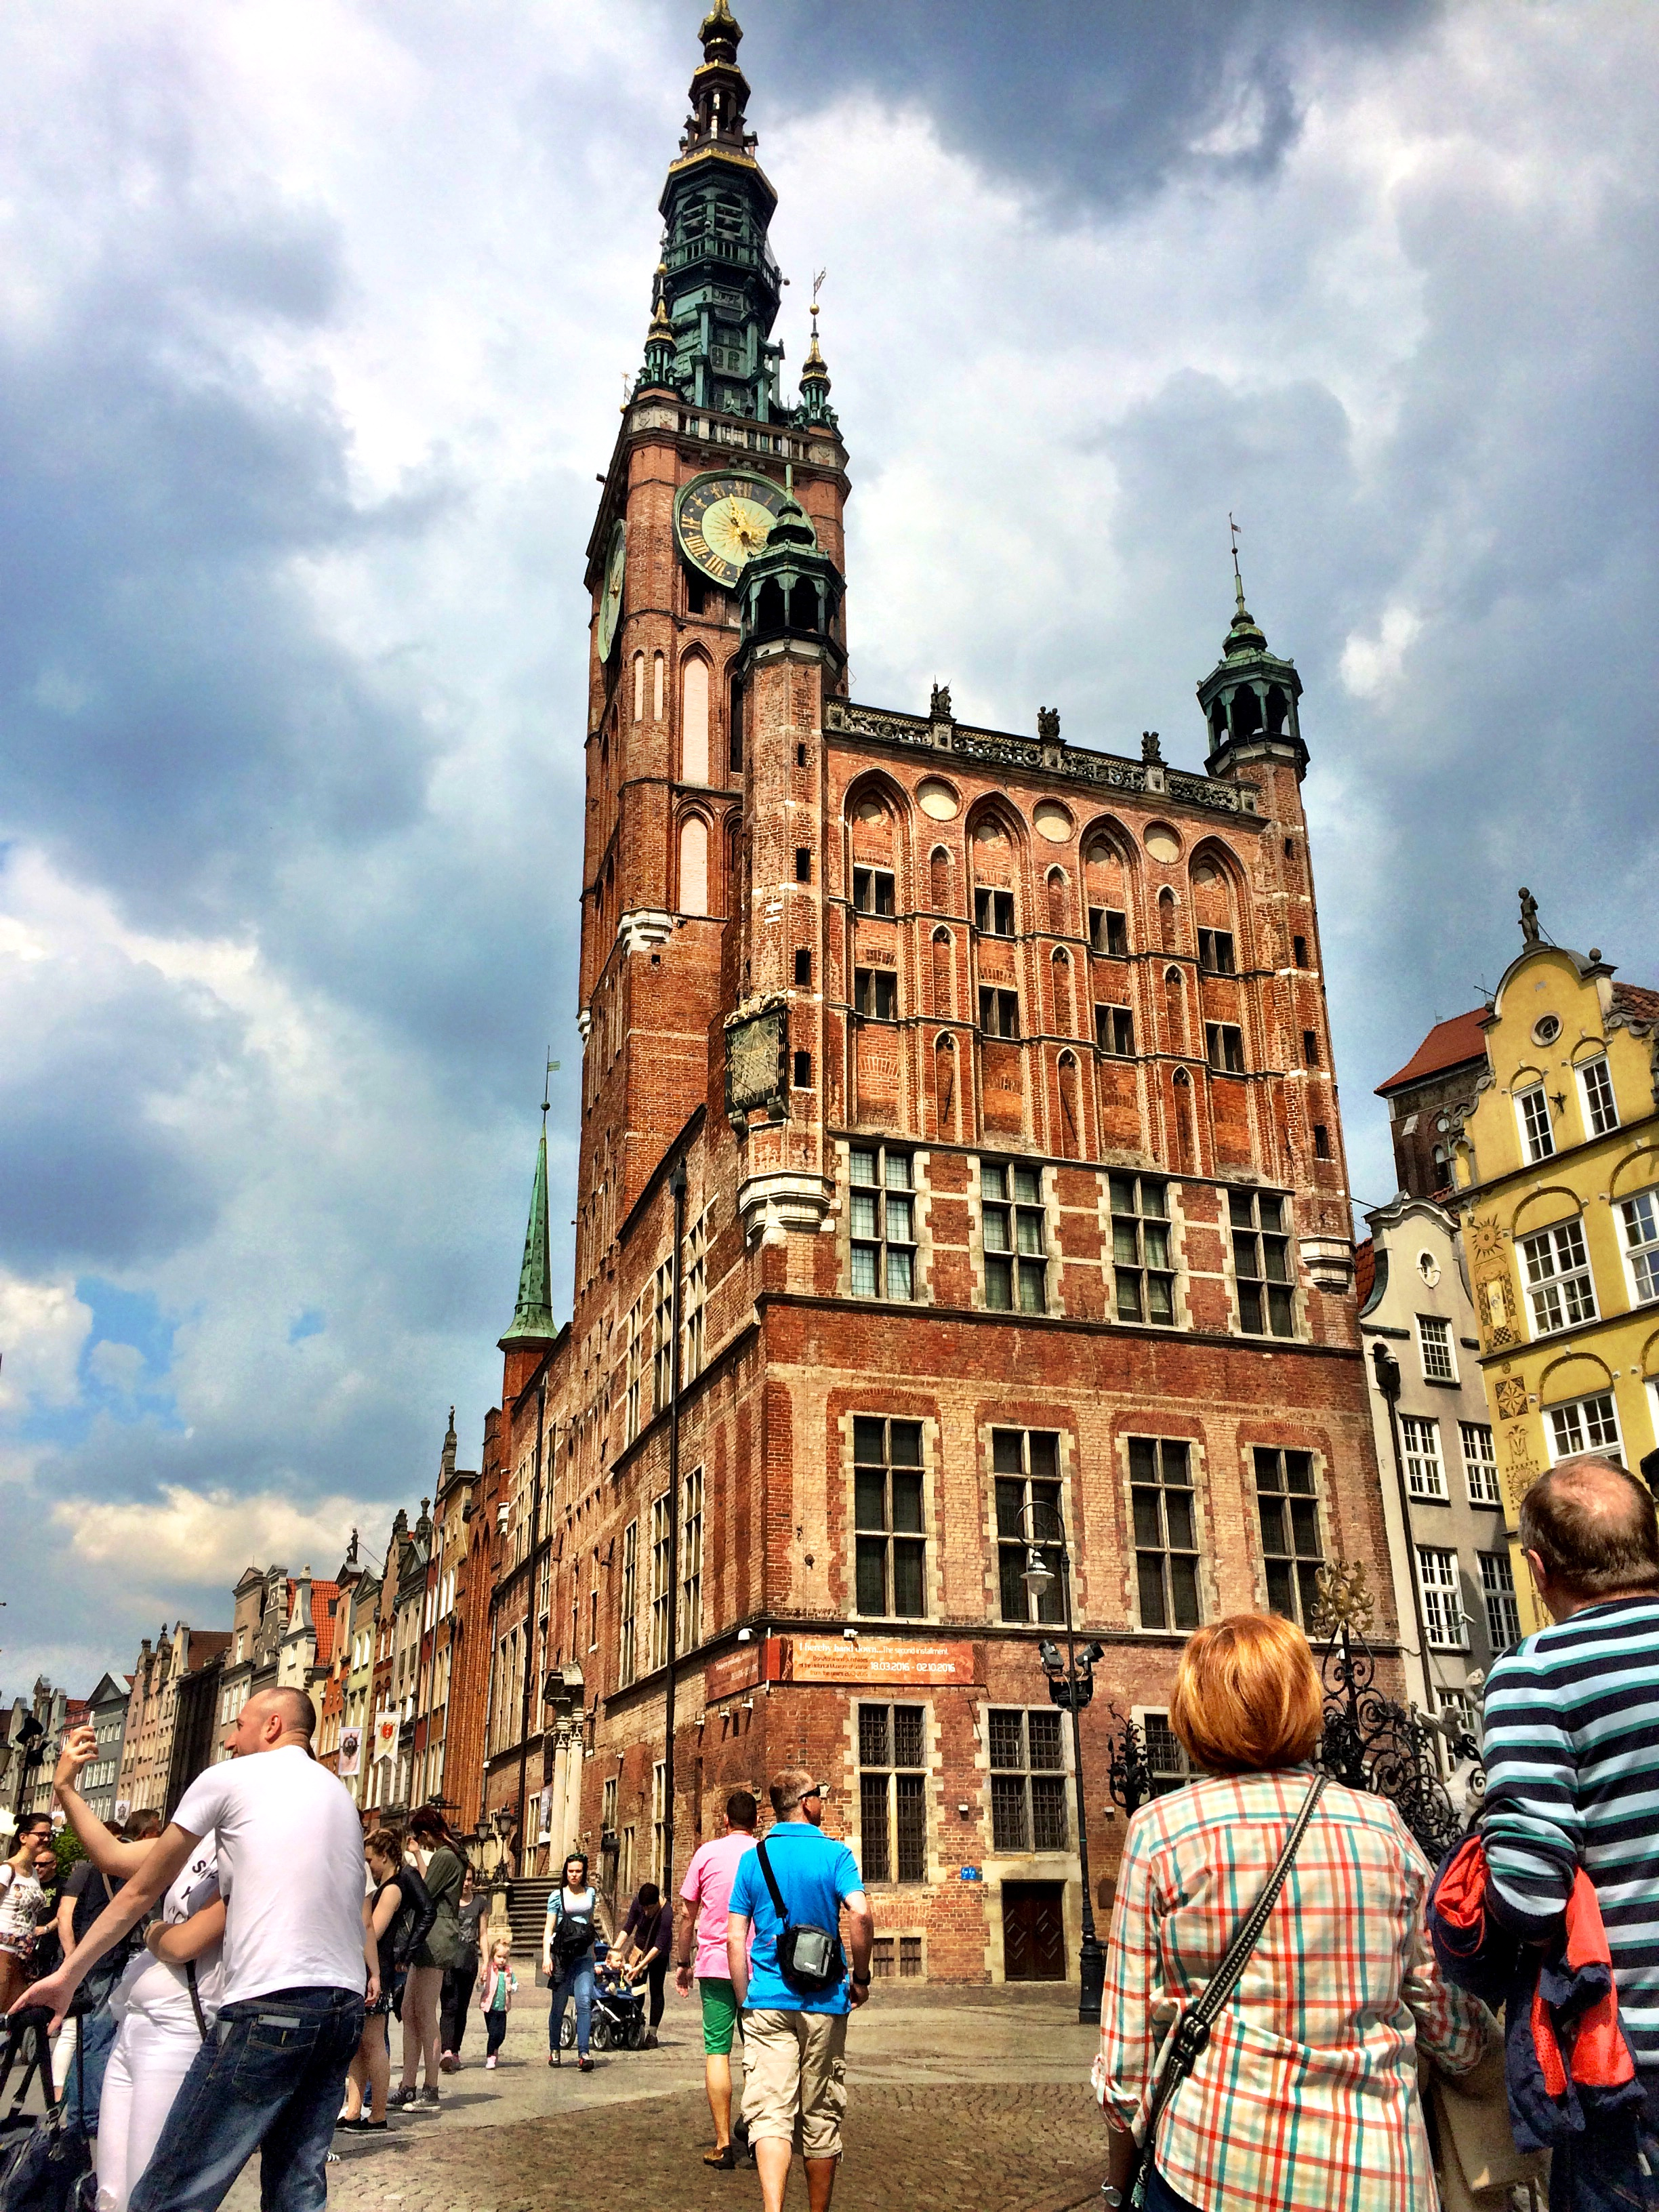 Gdansk – The City